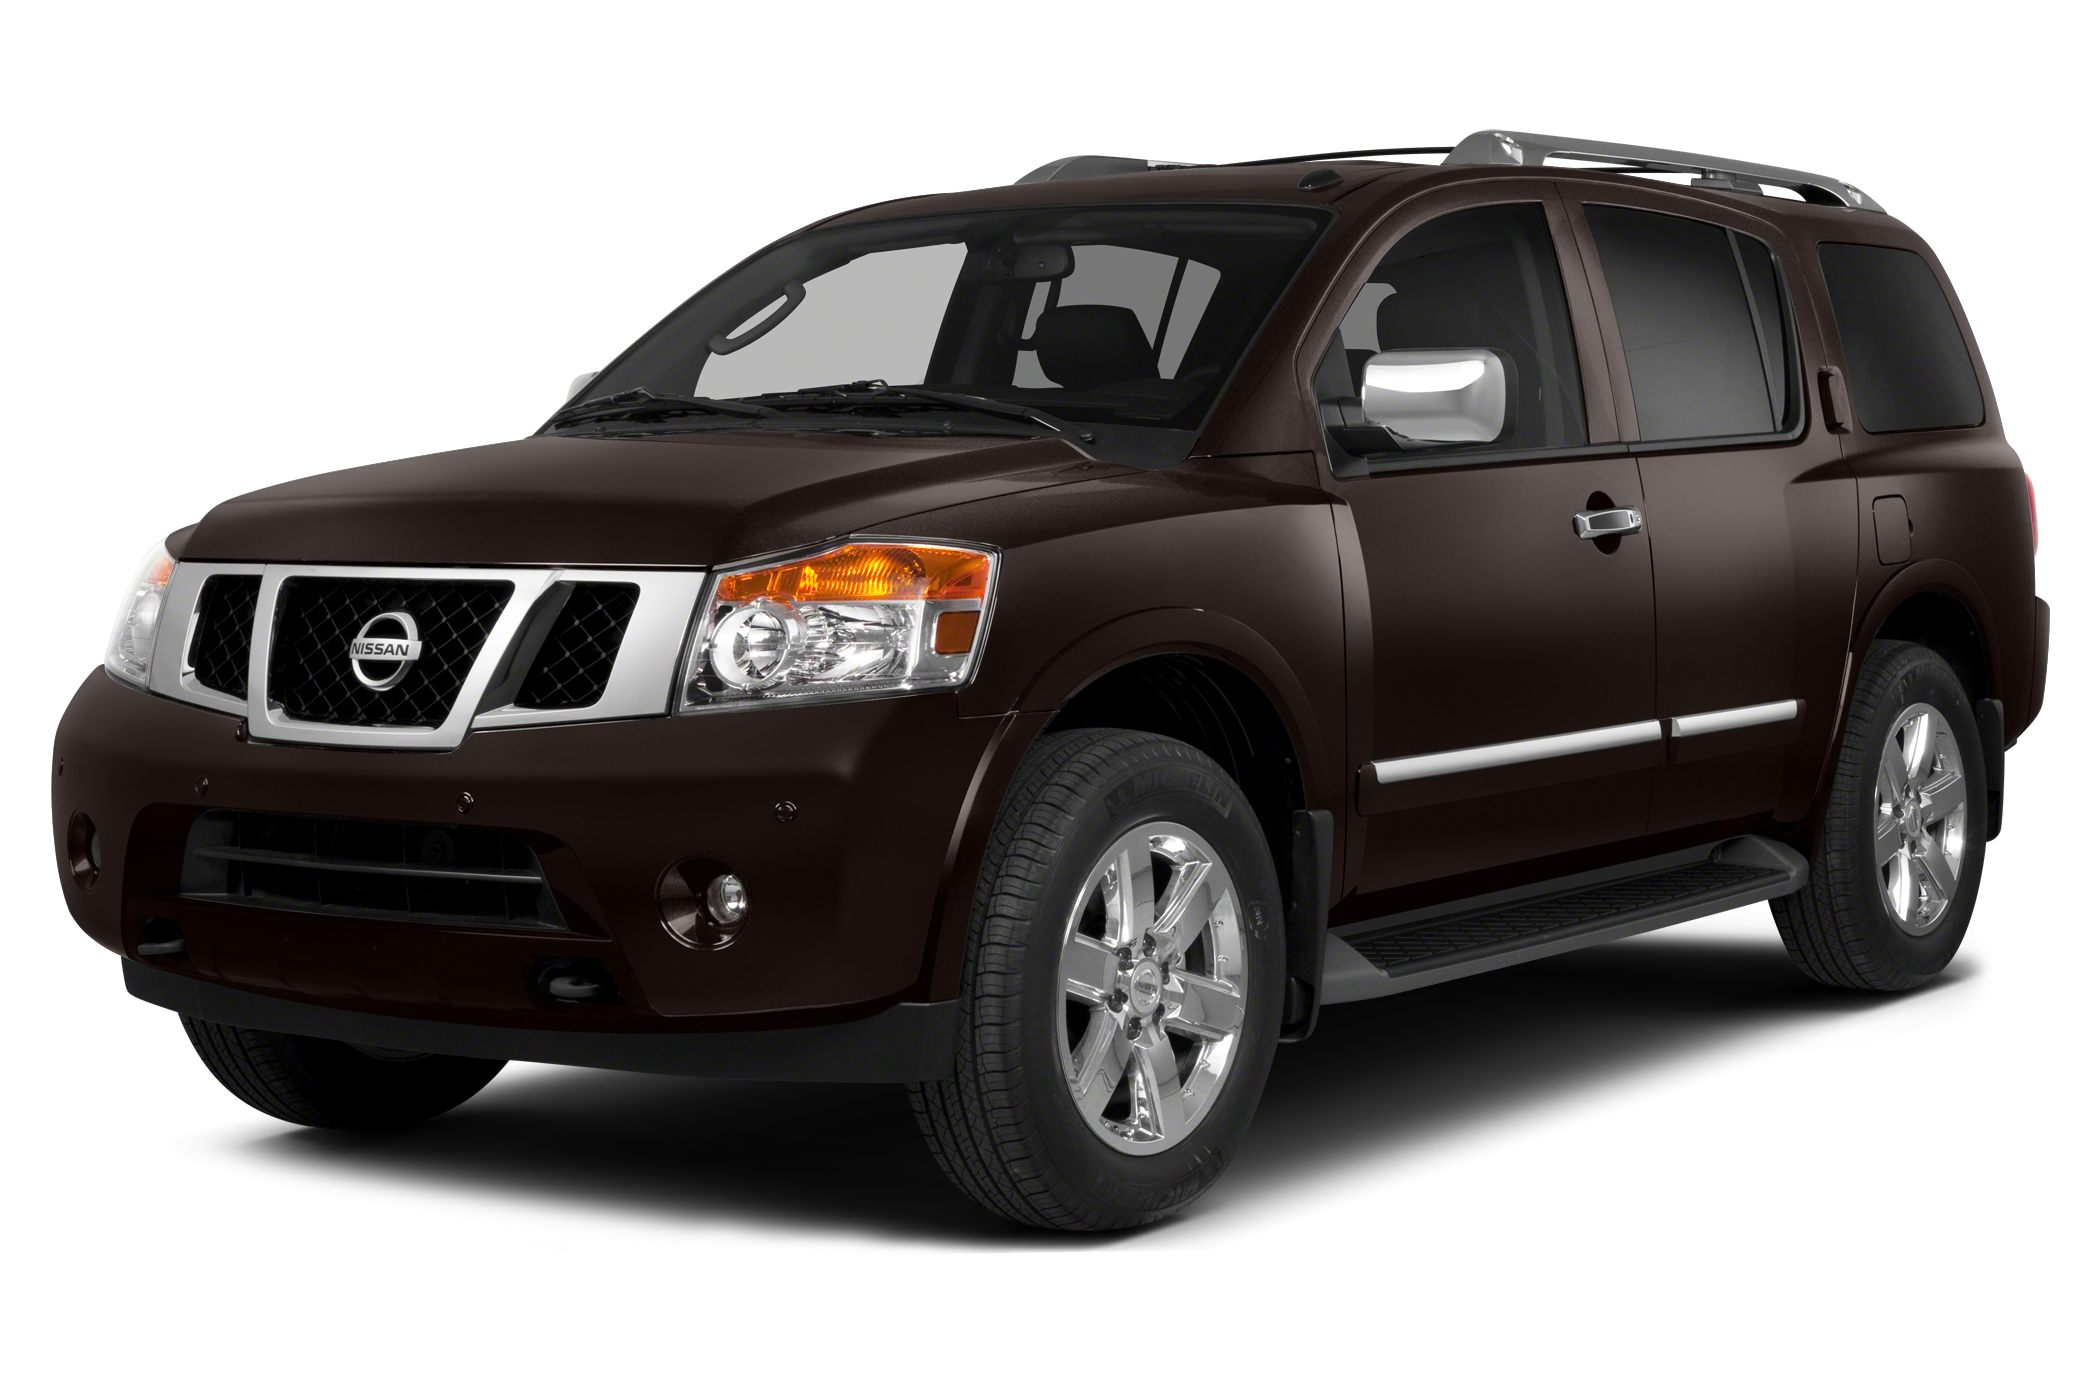 2015 Nissan Armada SL SUV for sale in Augusta for $45,770 with 7 miles